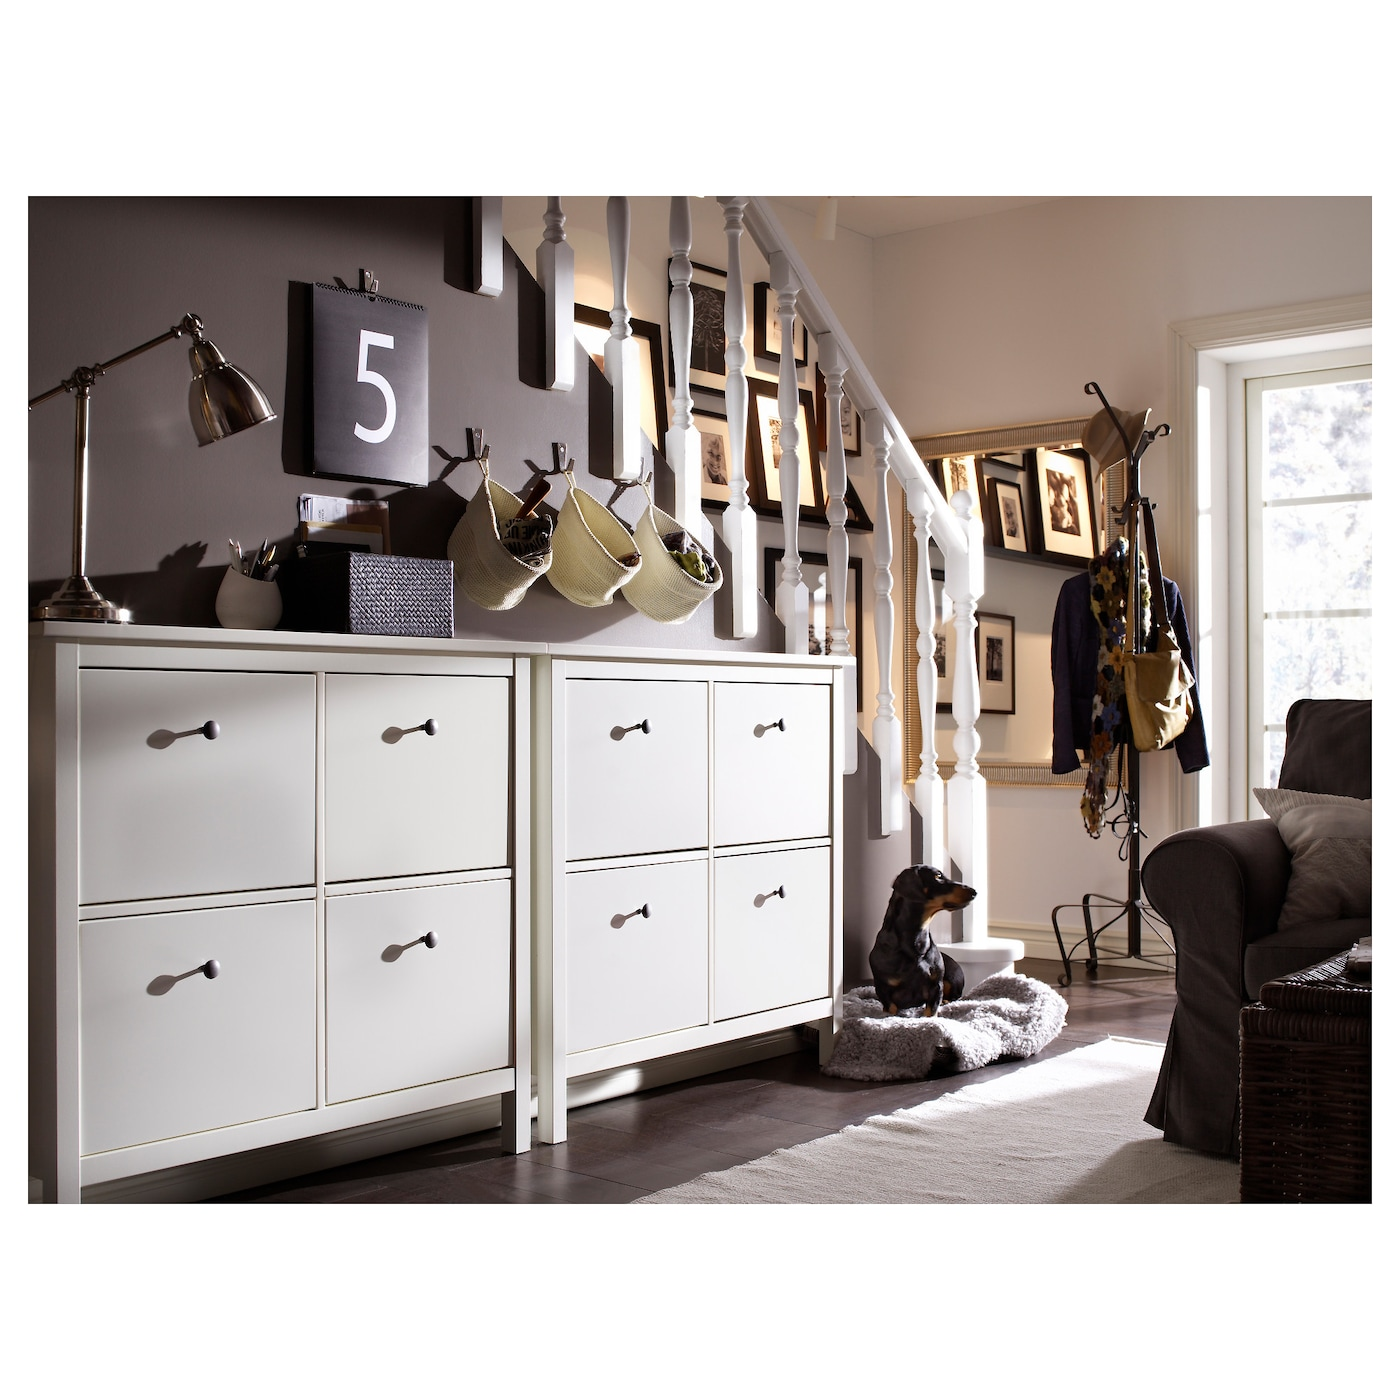 hemnes range chaussures 4 casiers blanc 107 x 101 cm ikea. Black Bedroom Furniture Sets. Home Design Ideas